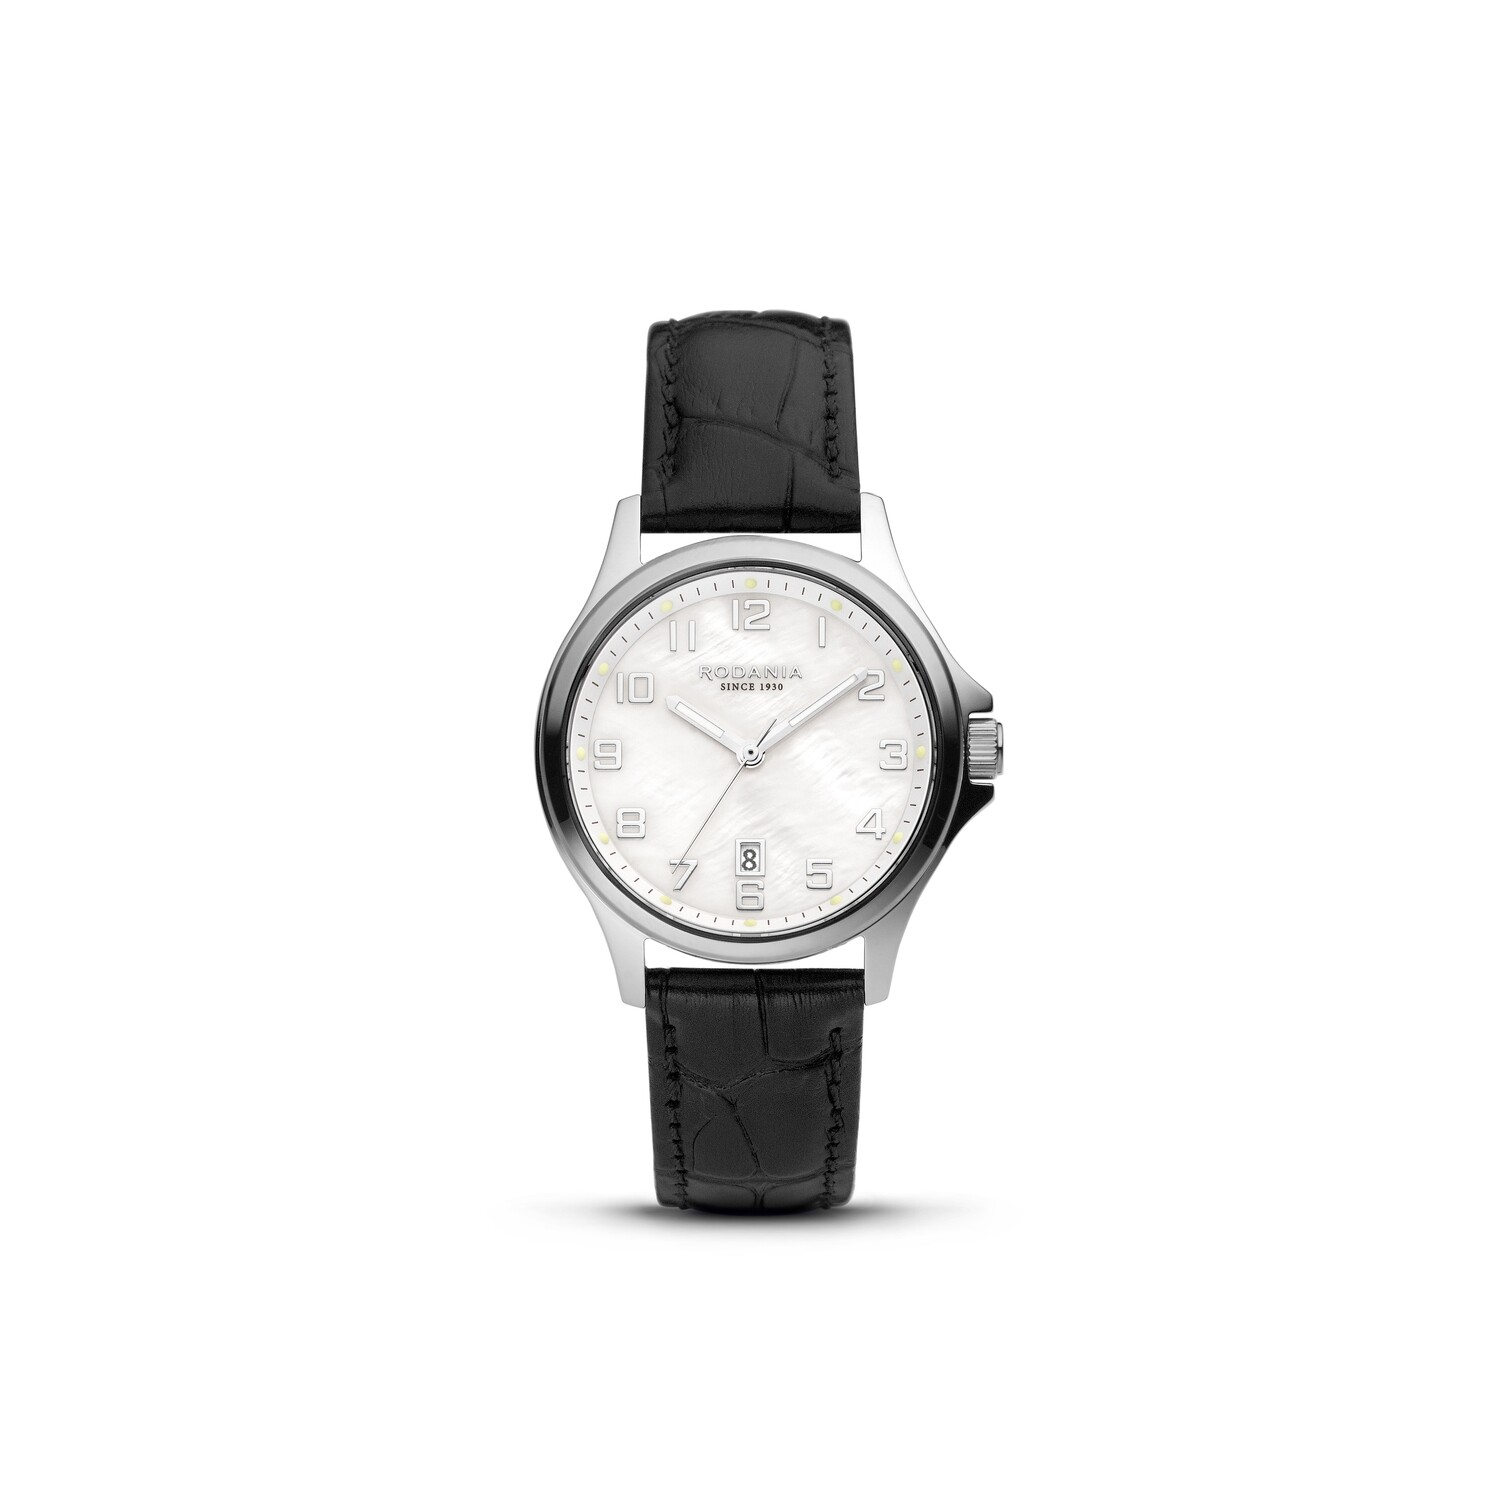 BELLINZONA: Silver Bezel Silver Case, MOP Dial, Black Leather, 32mm